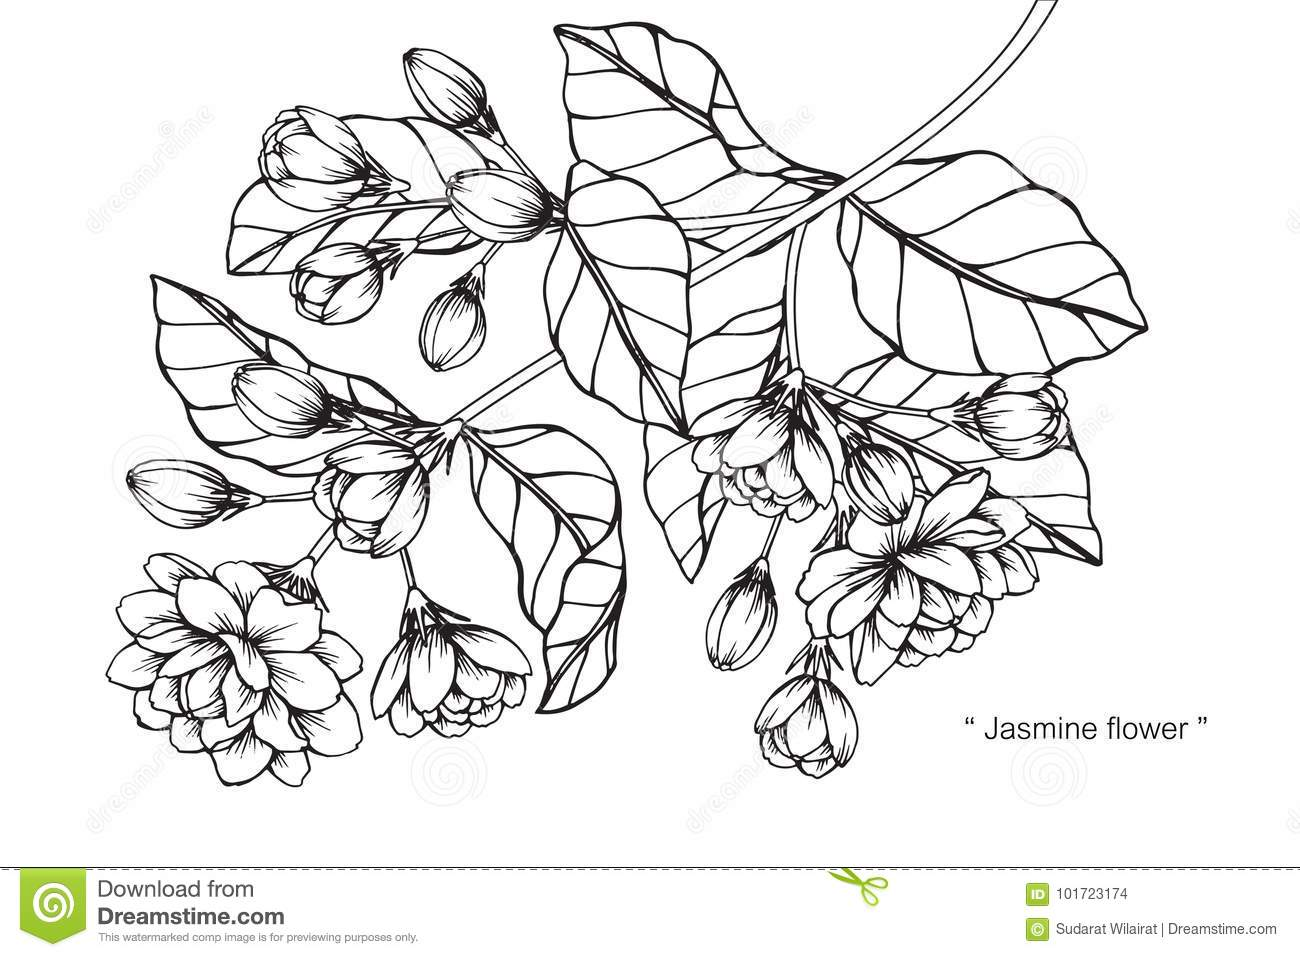 Jasmine Flower Drawing And Sketch With Line Art On White Backgrounds